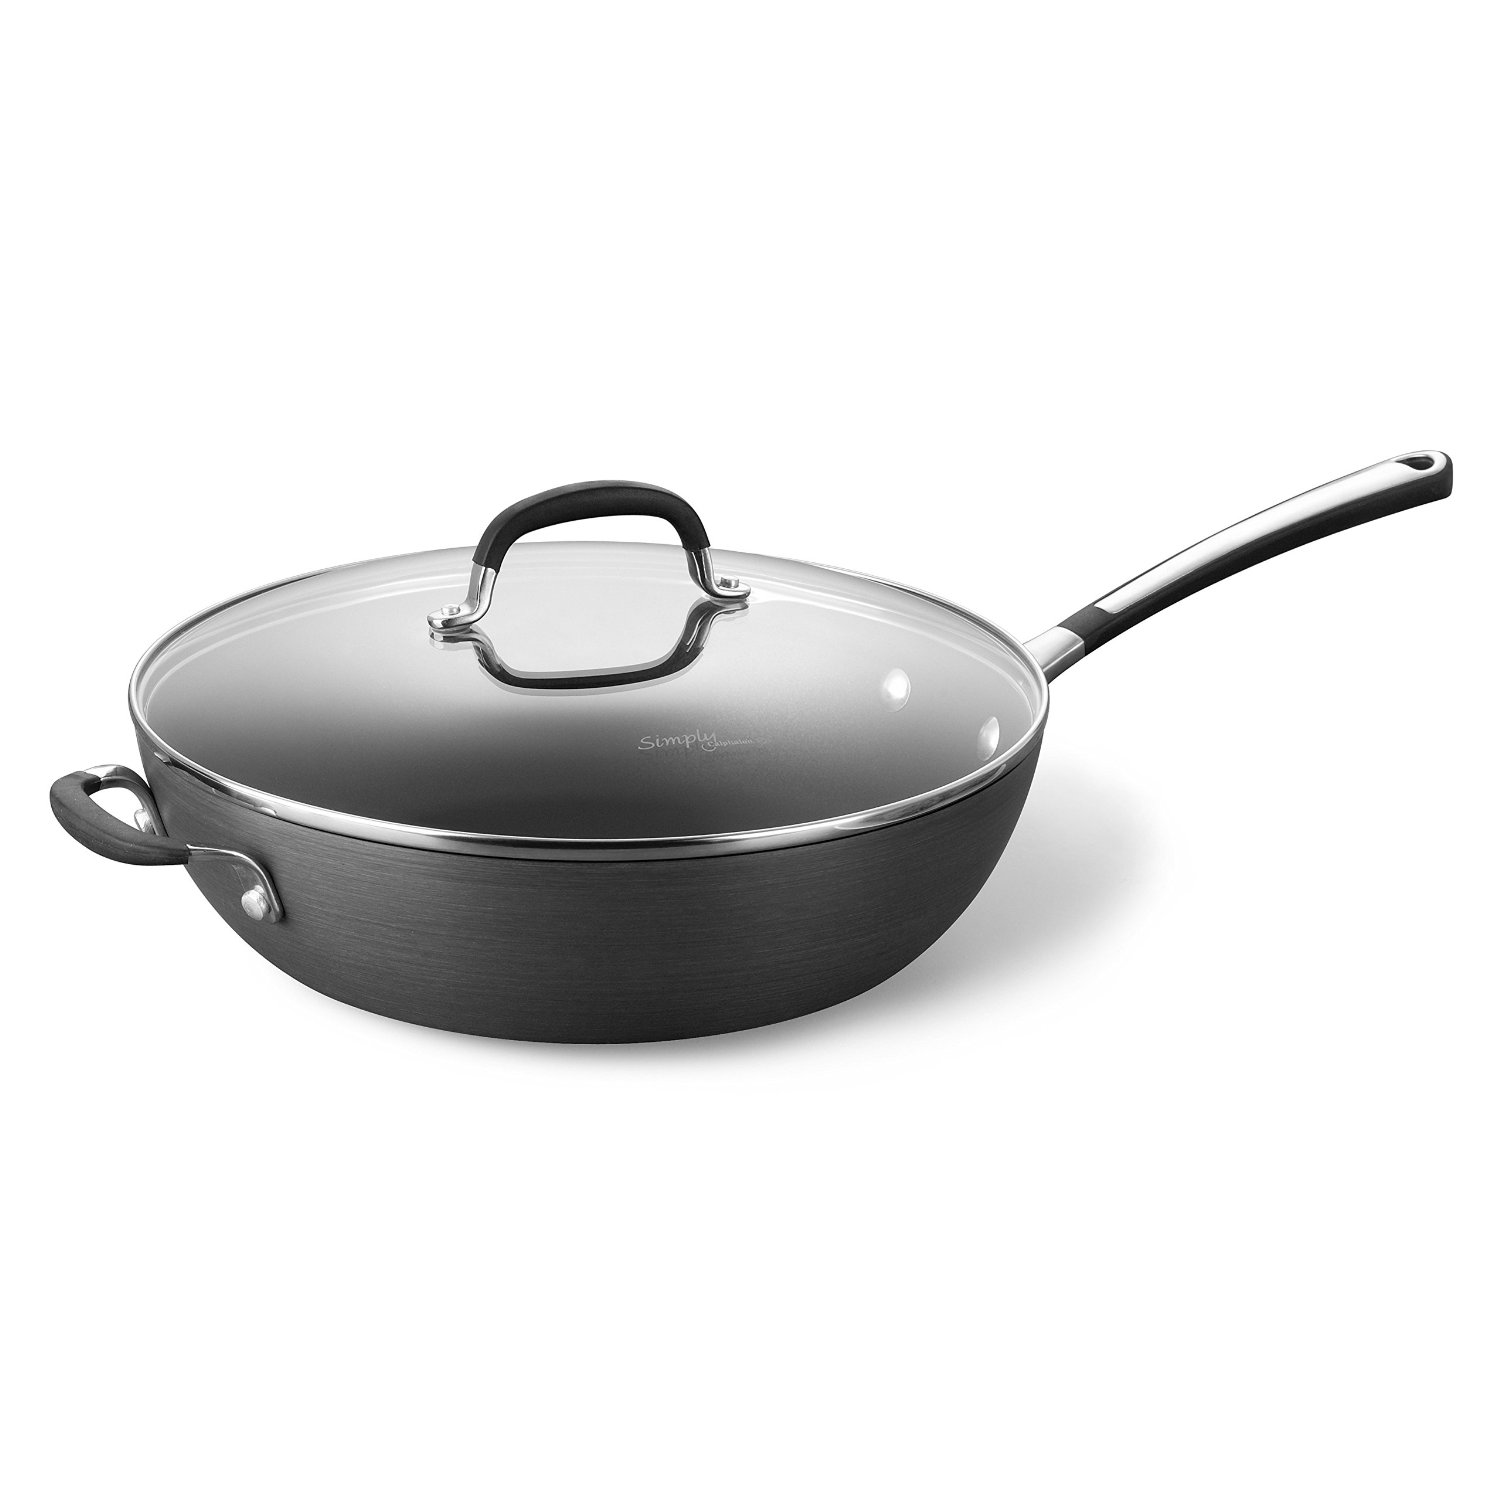 Top 10 Calphalon Cookware Reviews Best Units For You 2018